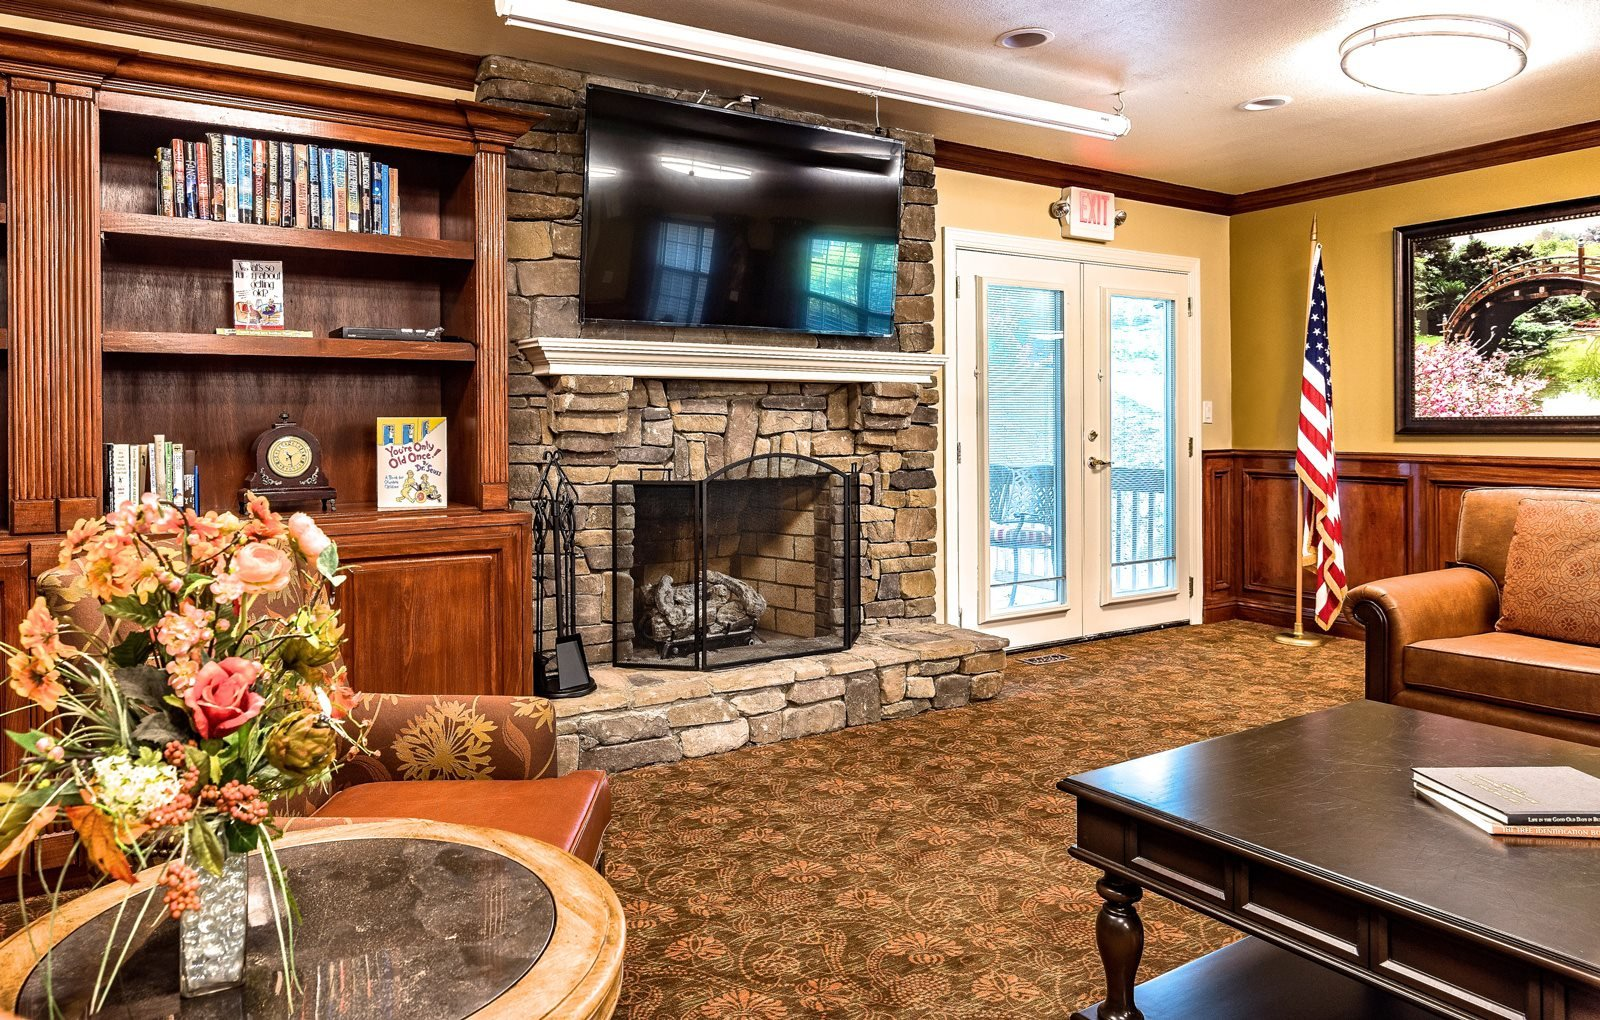 Accessible Living Space for Life at Pacifica Senior Living Heritage Hills, Hendersonville, NC